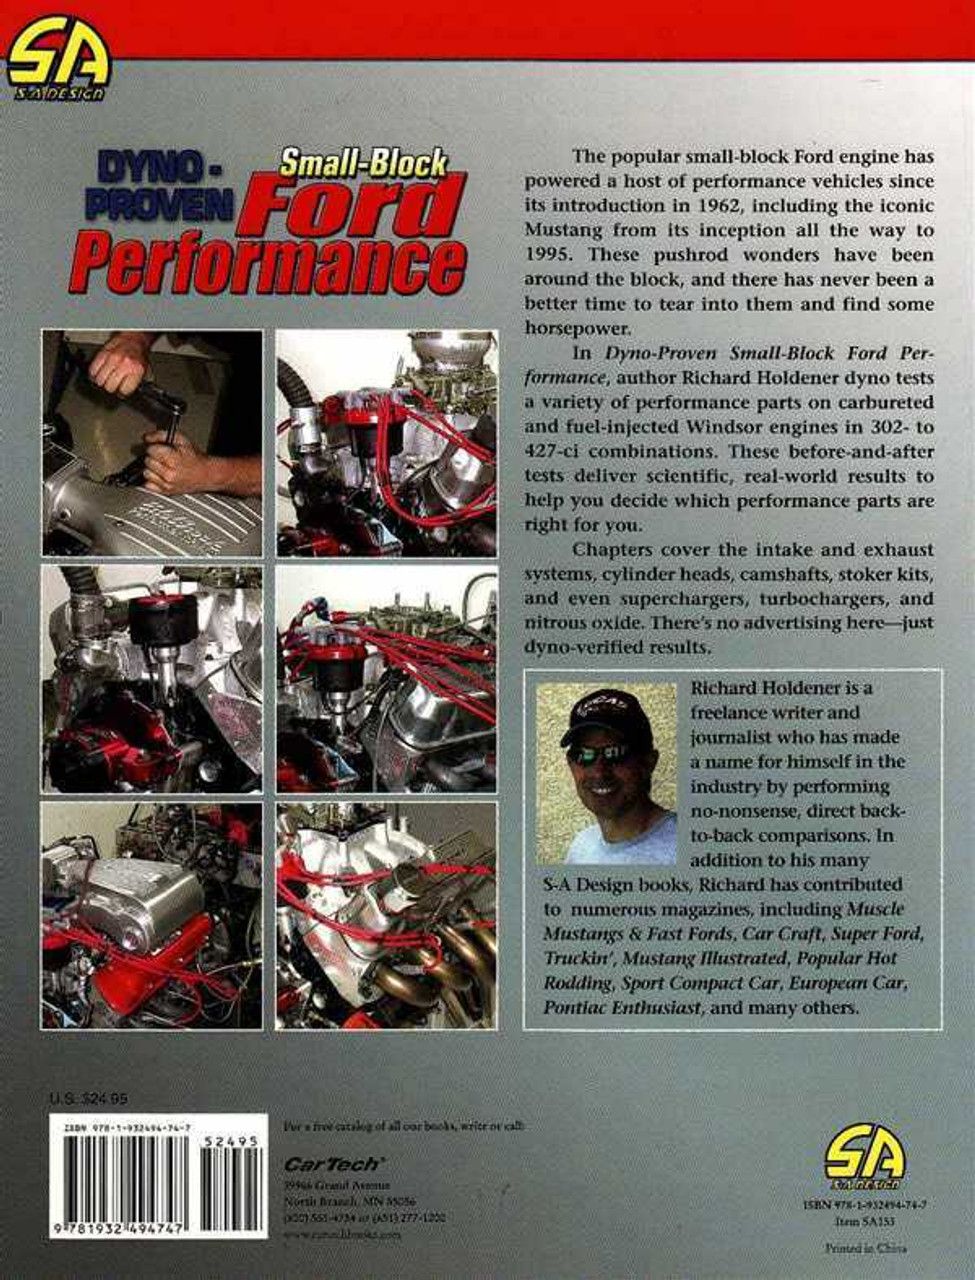 Dyno-Proven Small-Block Ford Performance